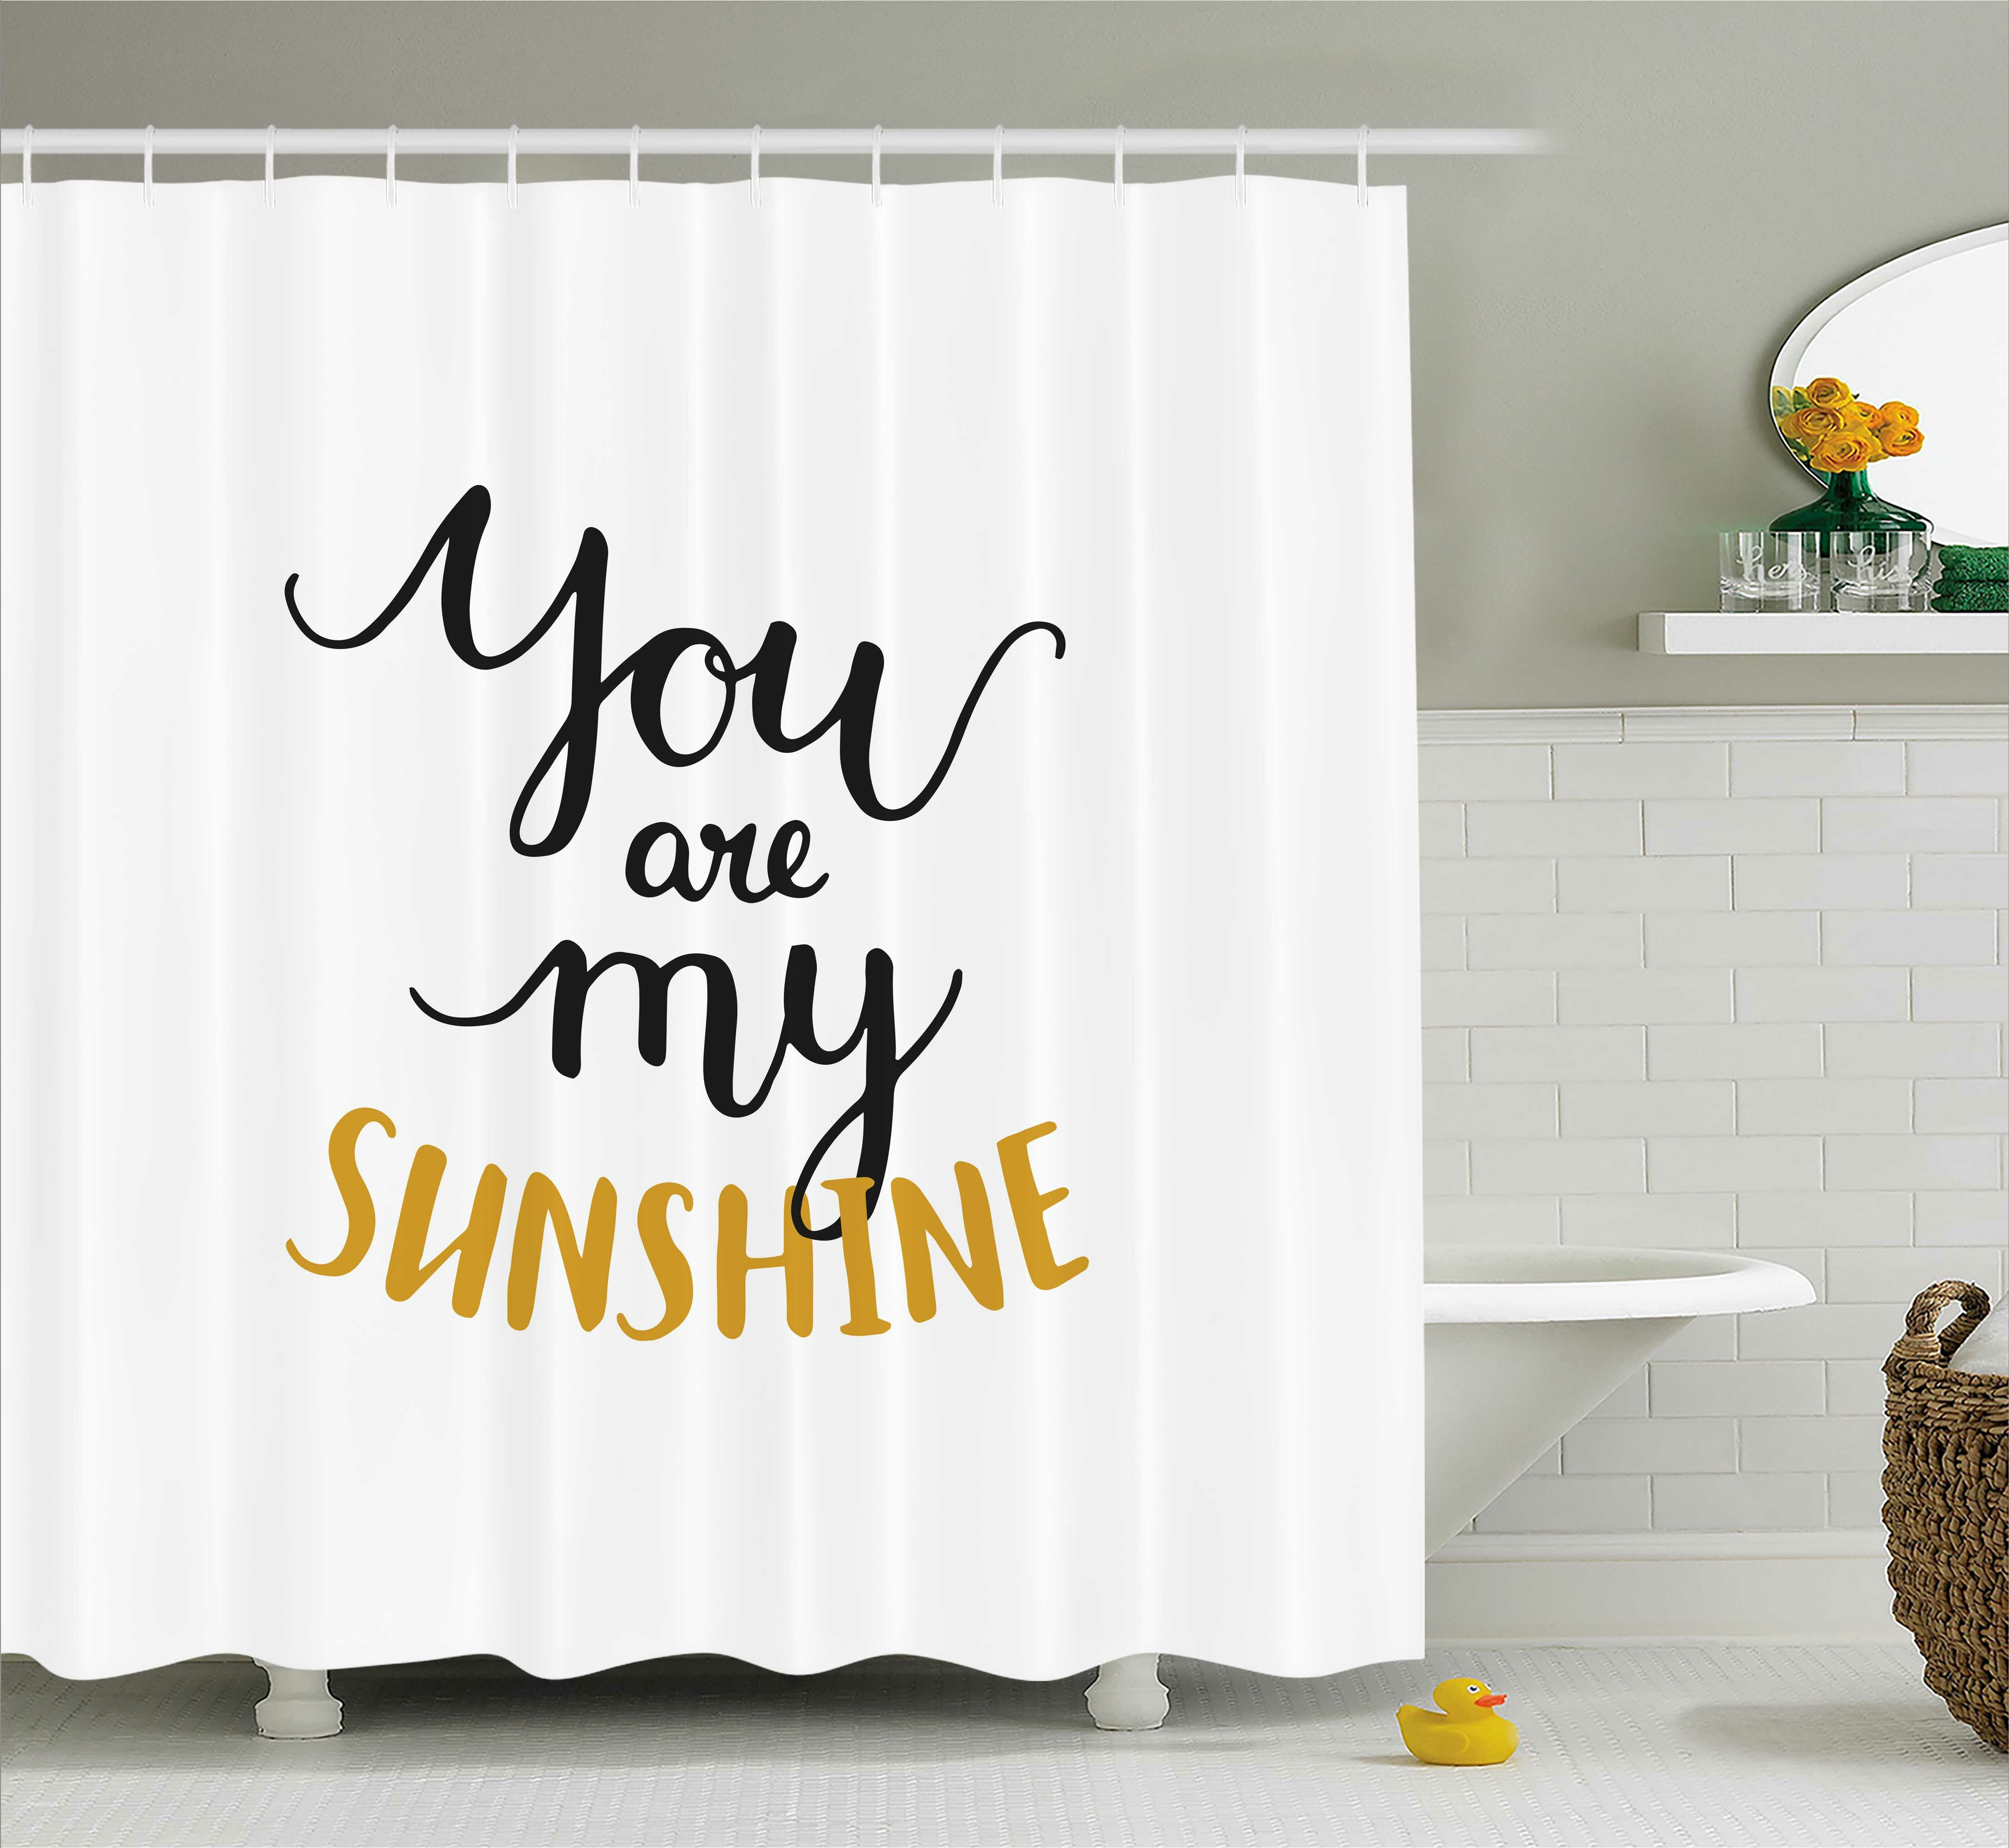 East Urban Home You Are My Sunshine Quotes Decor Shower Curtain | Wayfair